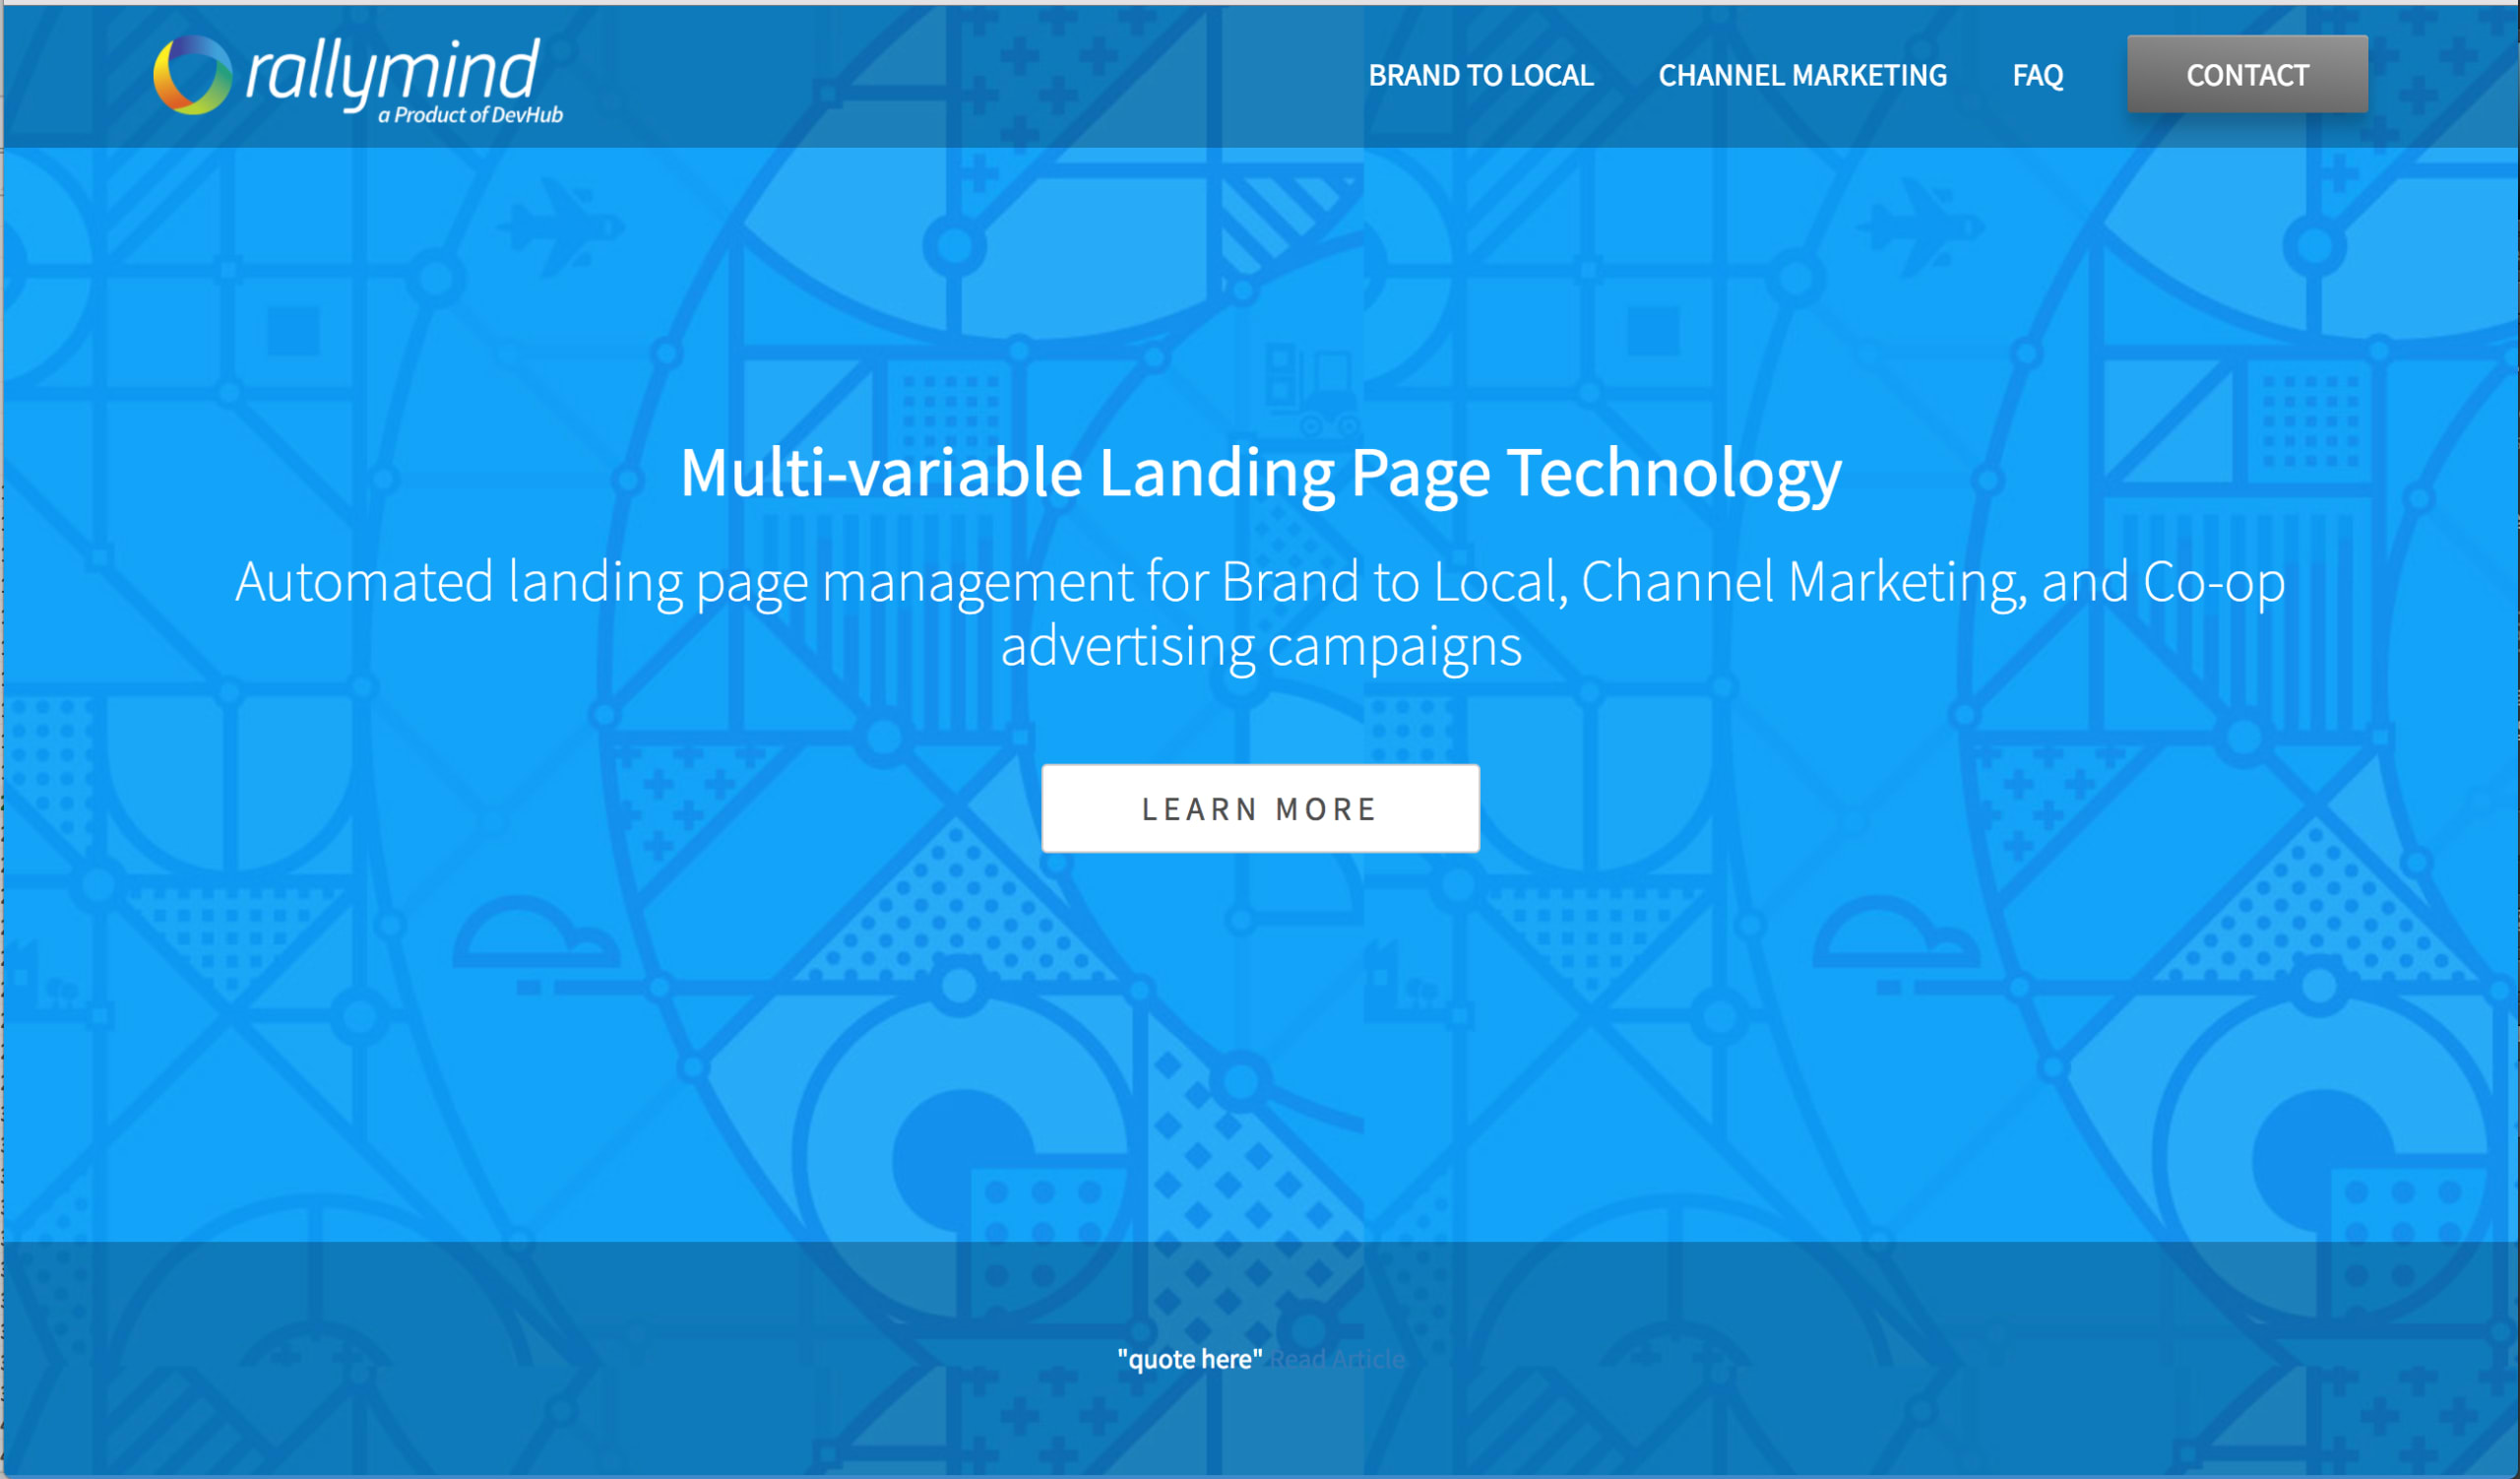 How Companies are Increasing ROIs with RallyMind's Landing Page Management Technology